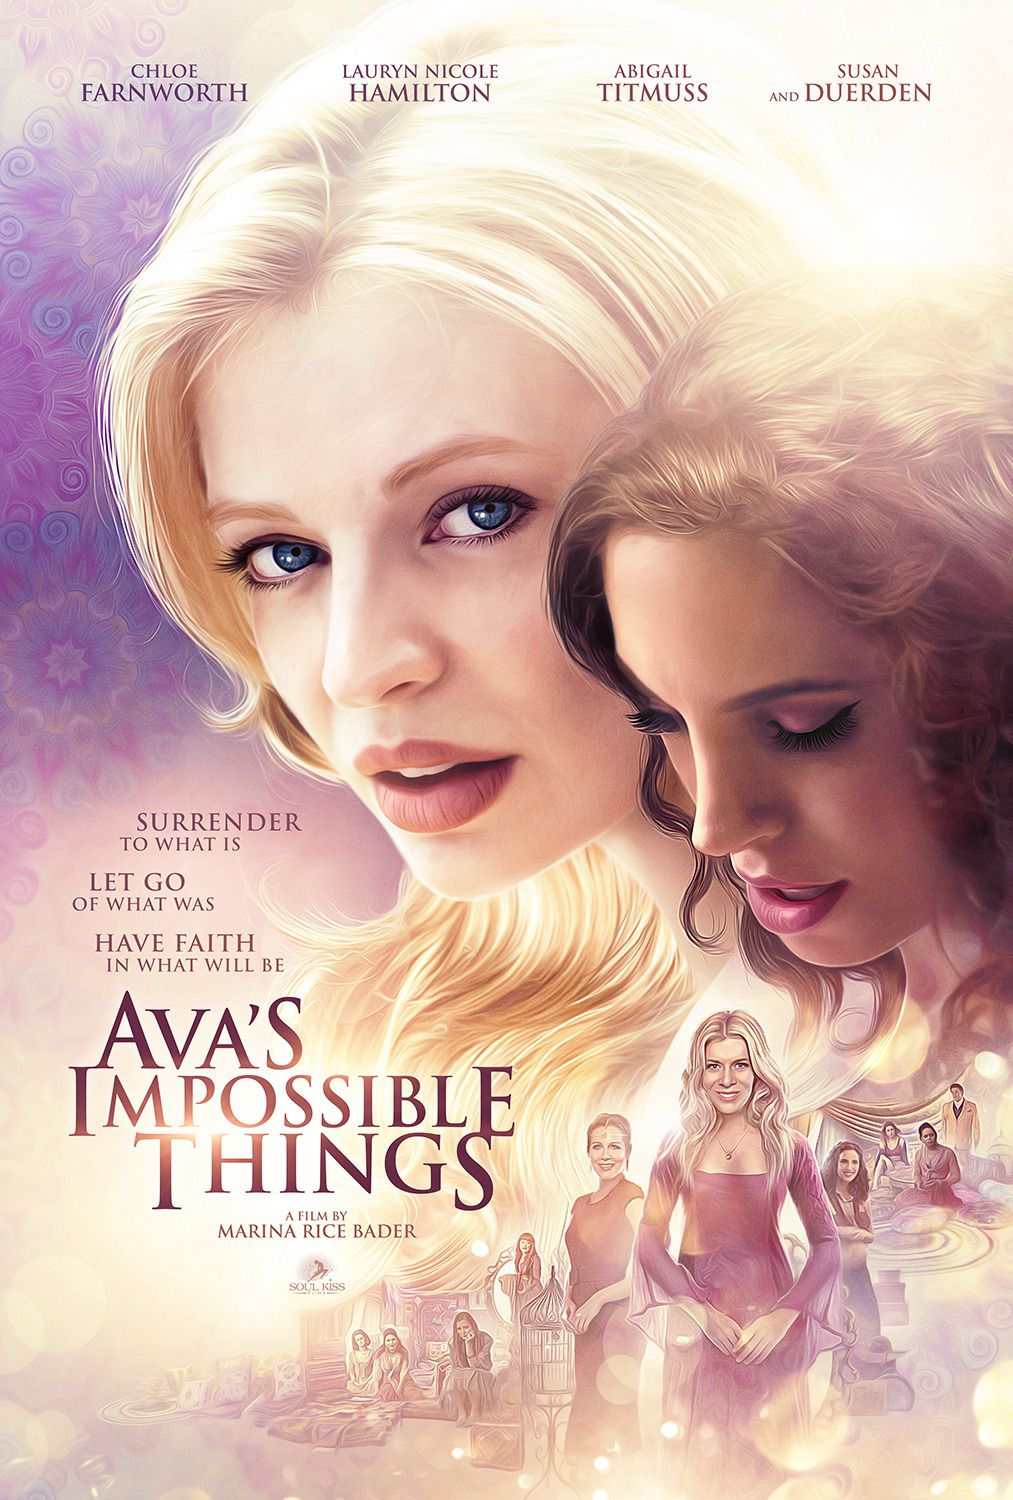 Avas Impossible Things - Cast: Chloe Farnworth, Lauryn Nicole Hamilton, Abigail Titmuss, Susan Duerden - Film Poster